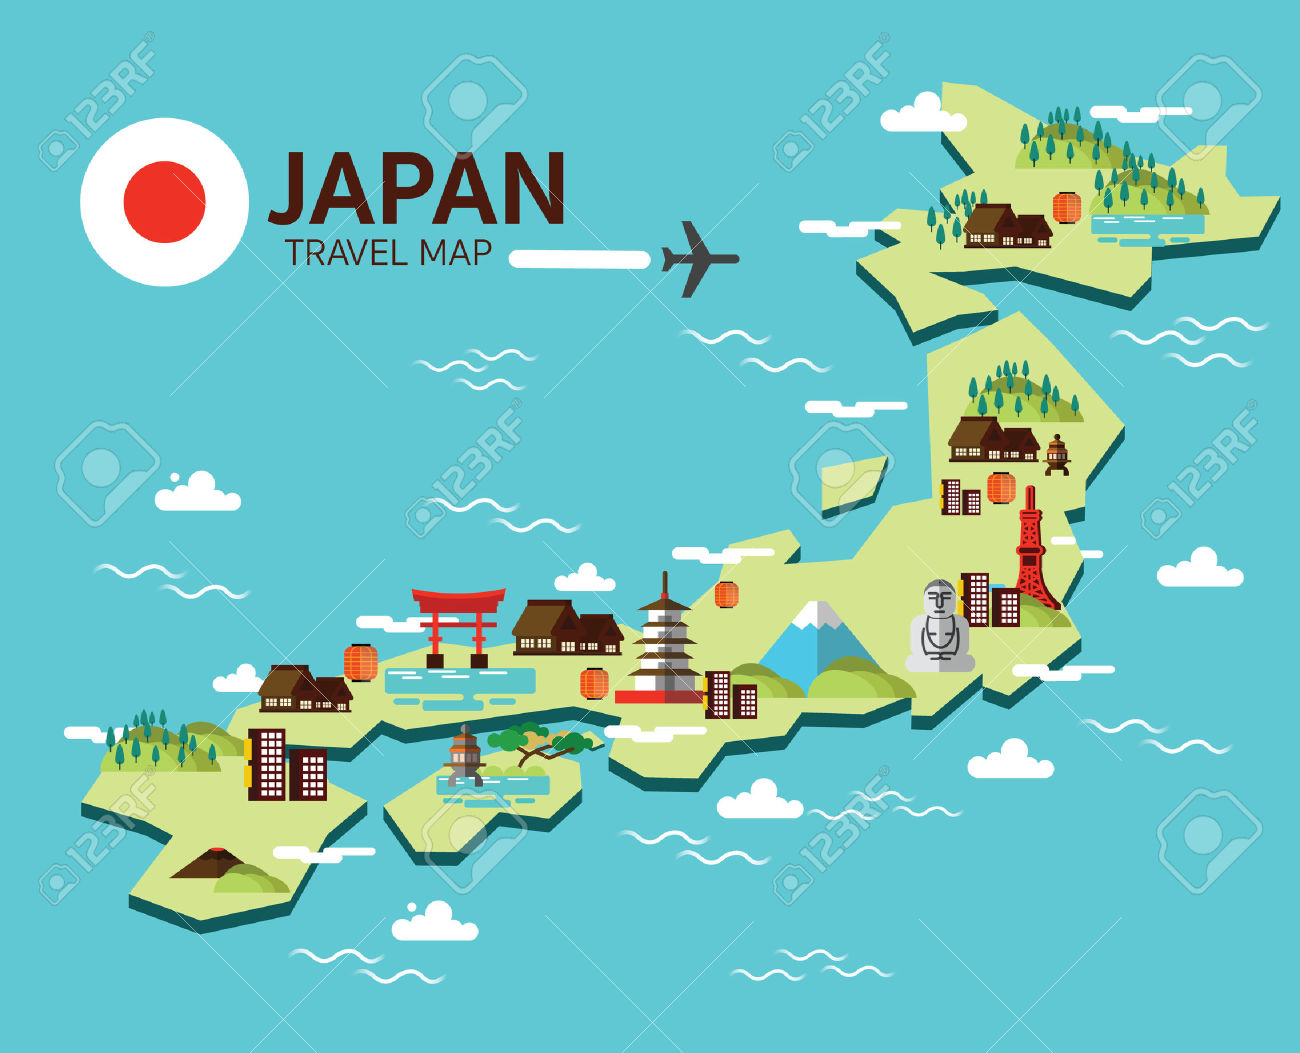 hight resolution of travel map clipart japan cliparts stock vector and royalty free